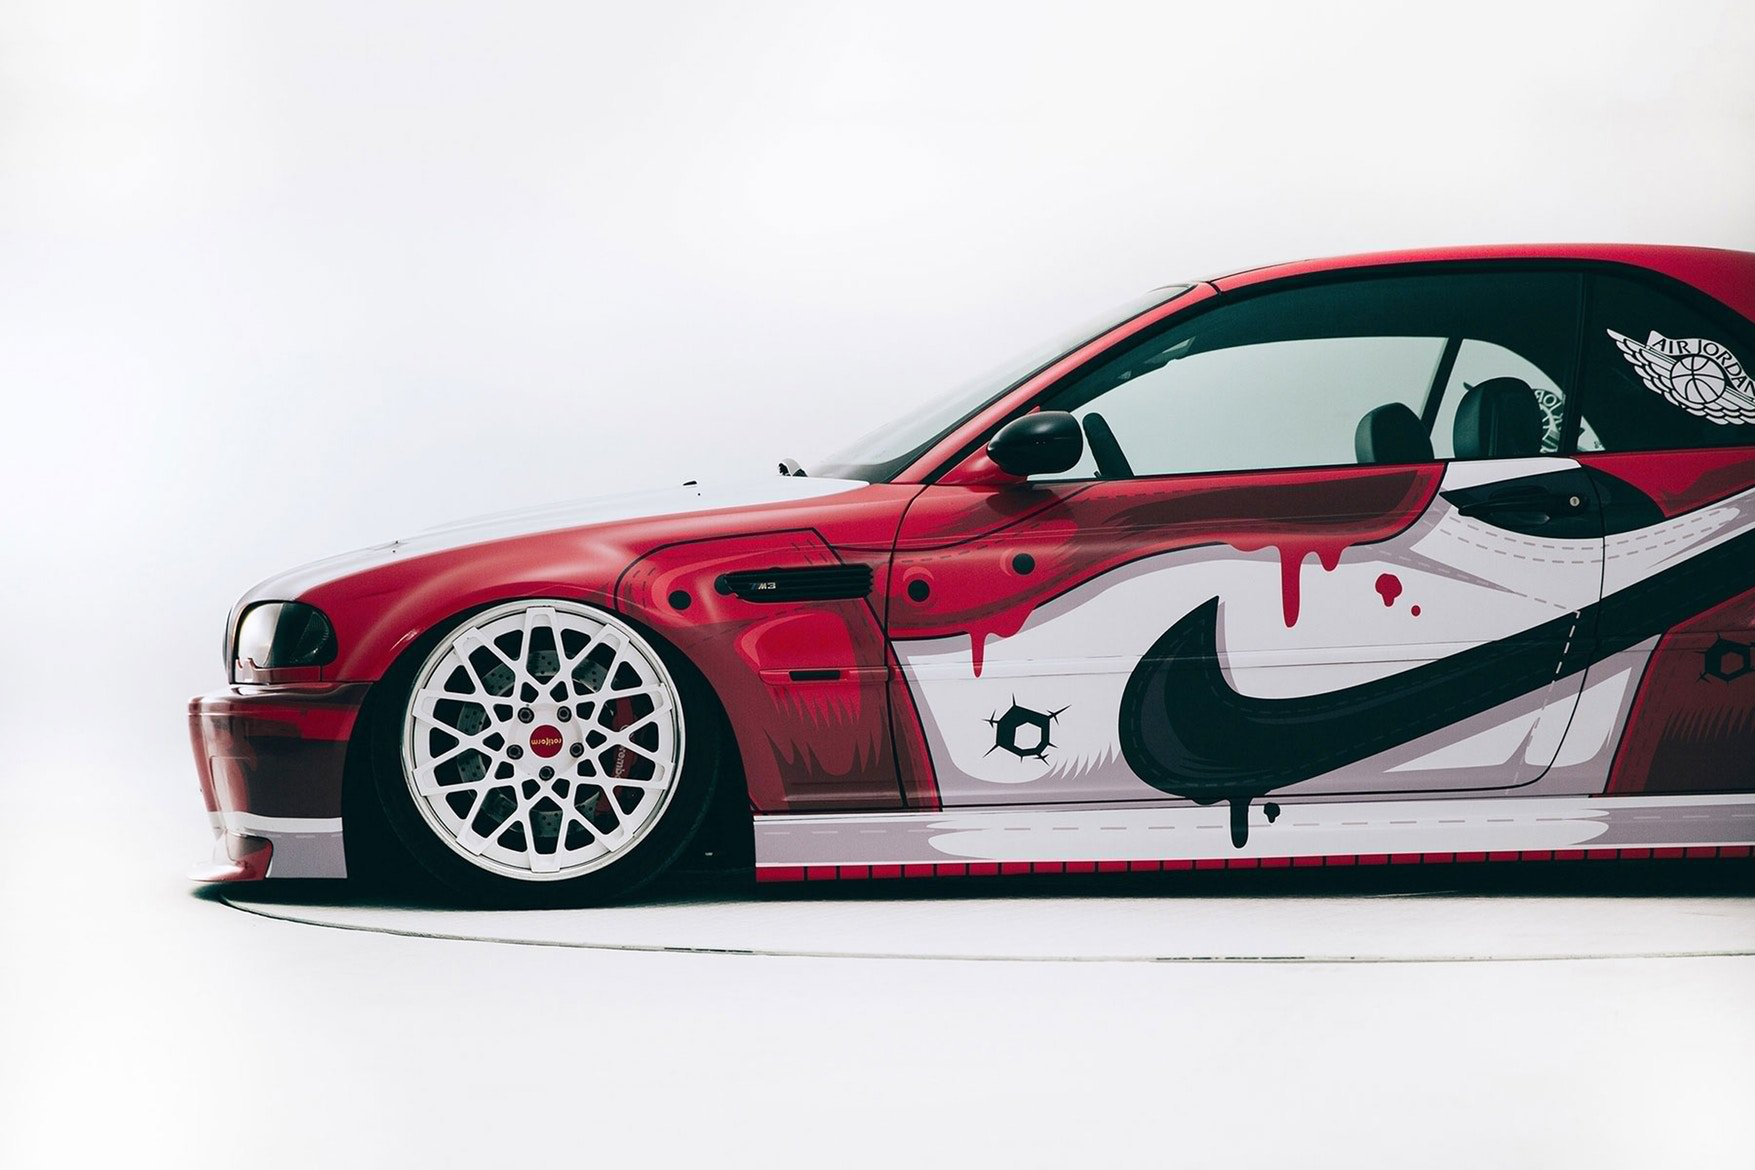 La BMW M3 customizzata con il colour scheme delle Nike Air Jordan 1 Chicago | Collater.al